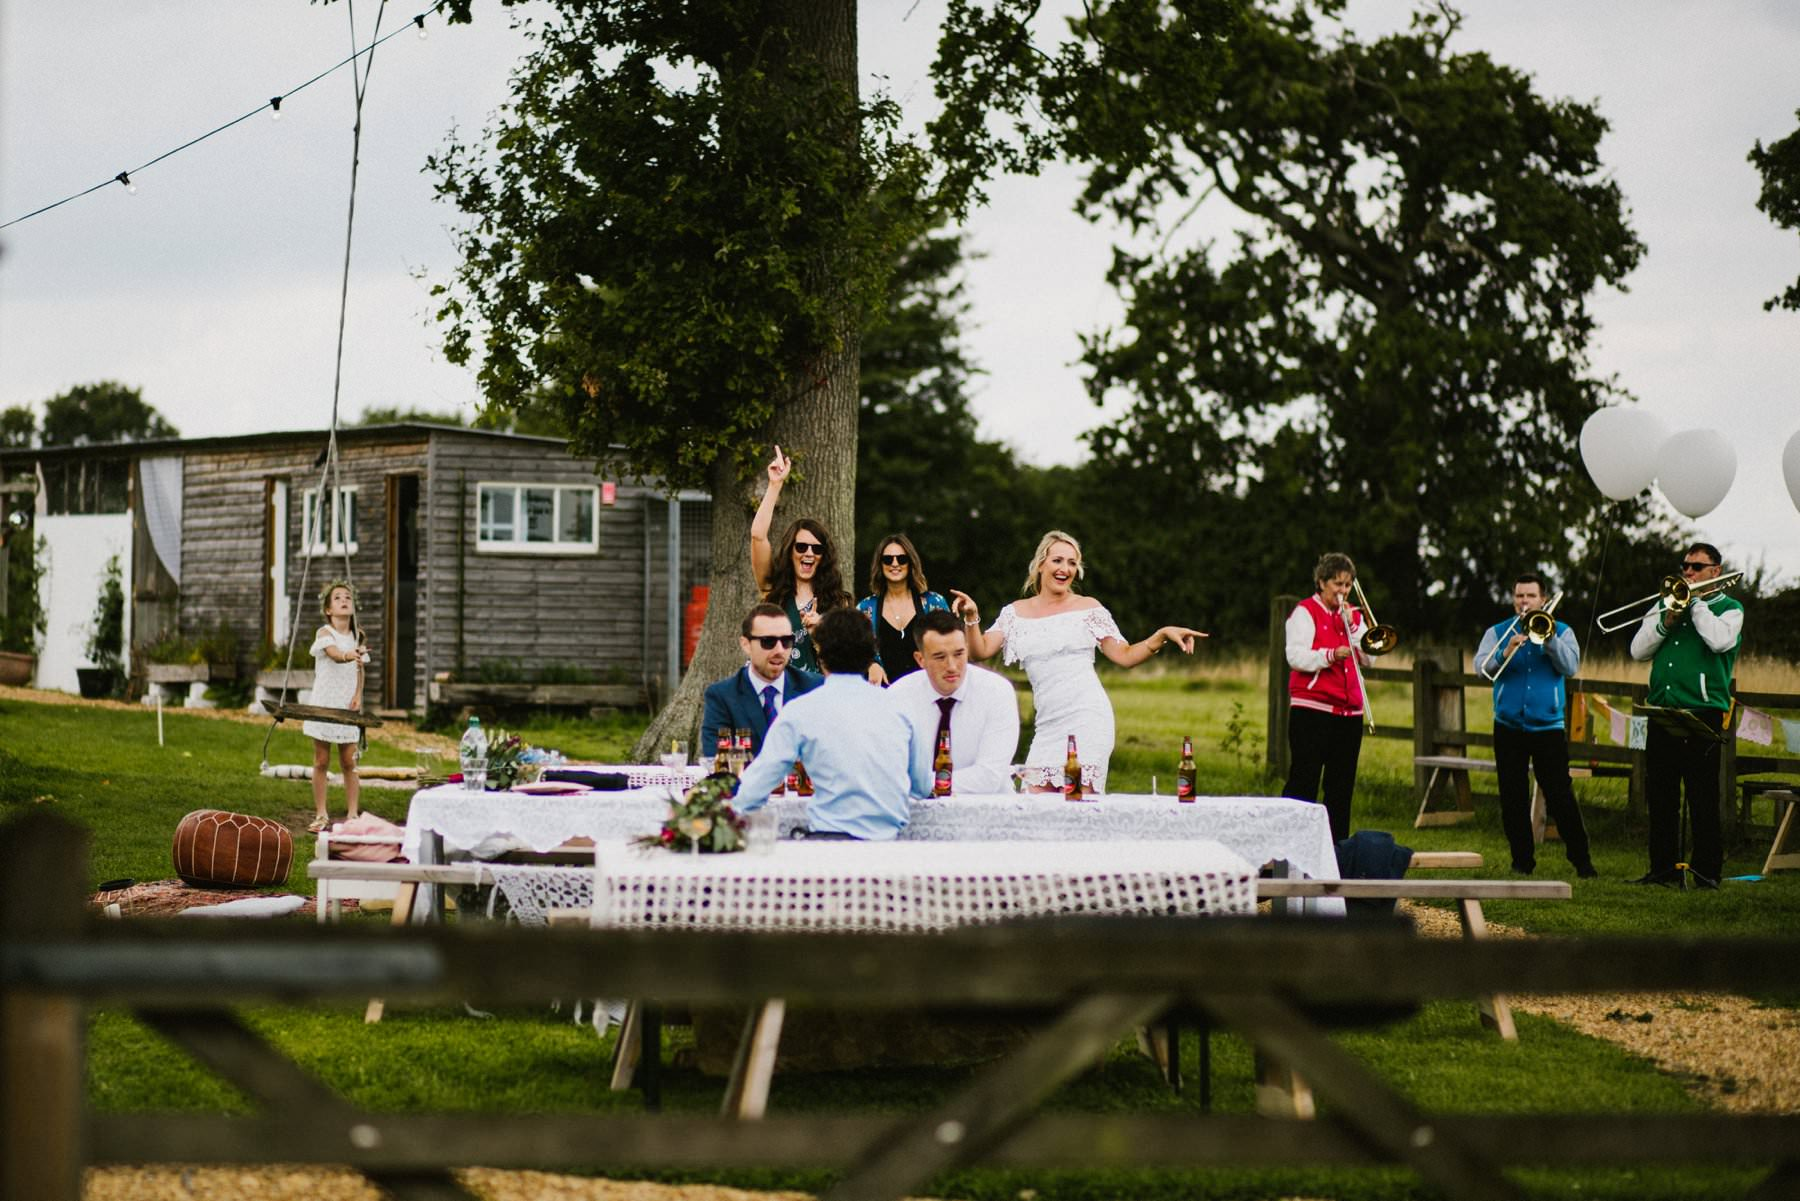 fire pit camp wedding photography norfolk